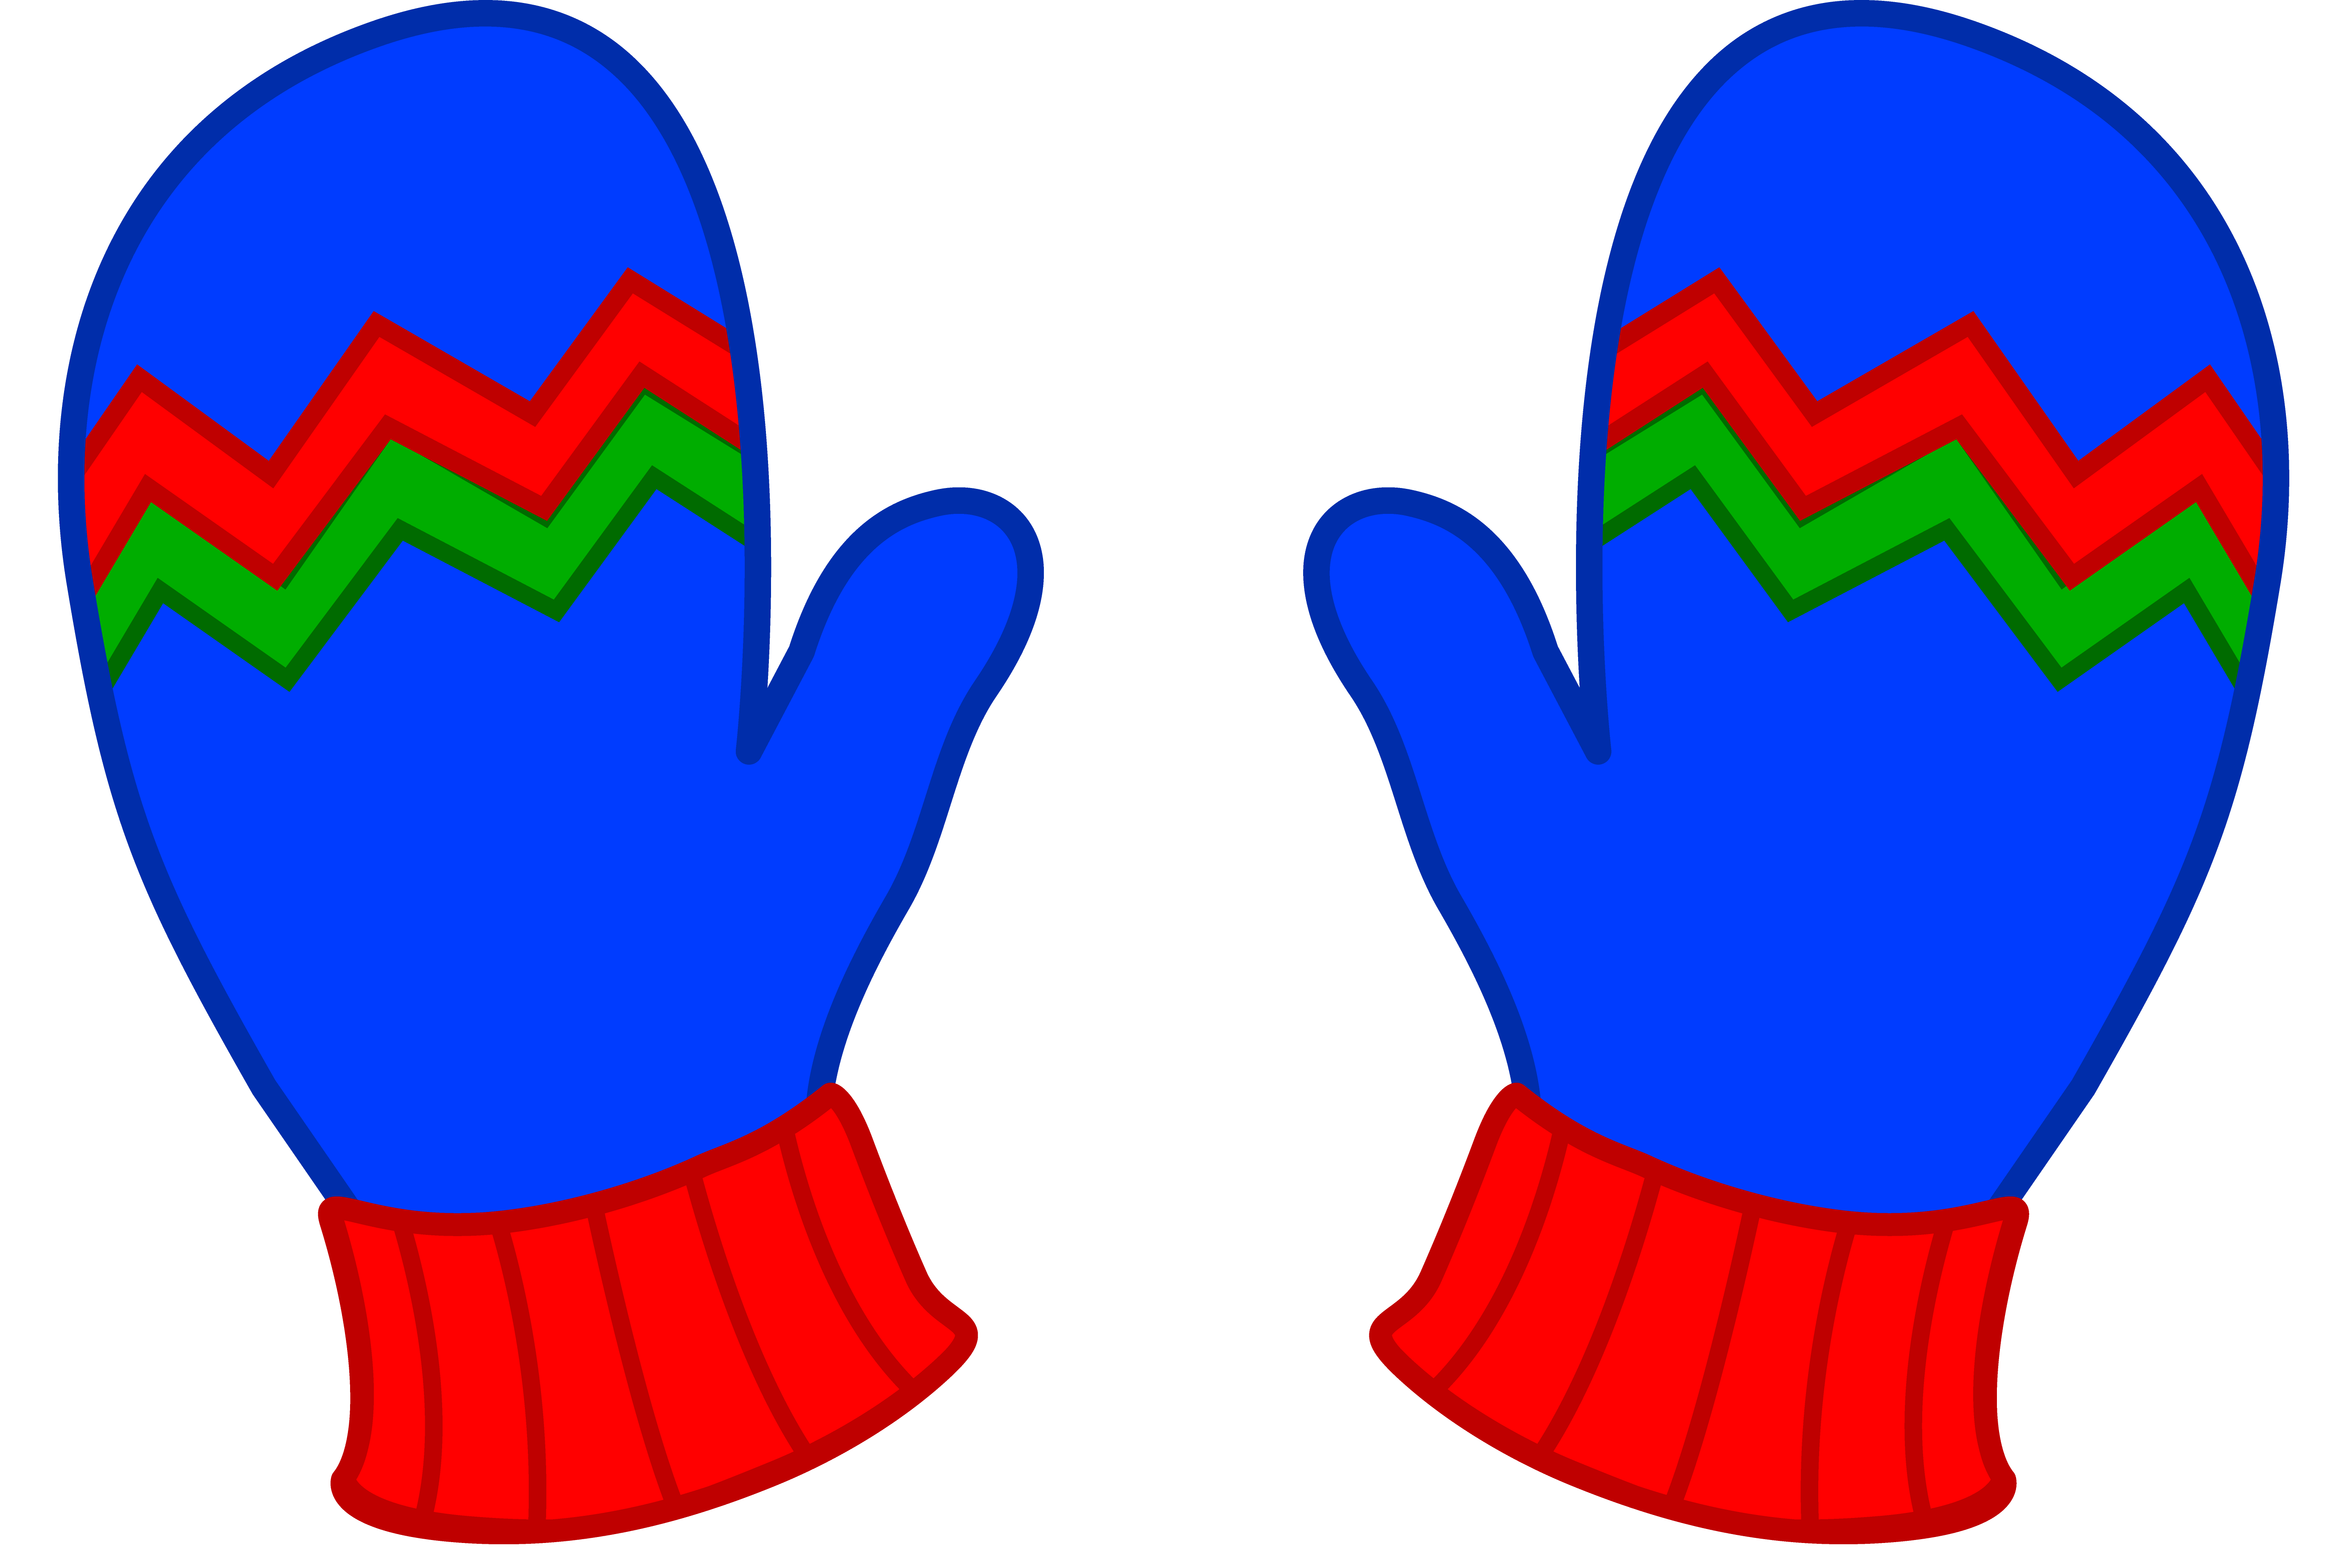 Winte mittens clipart clipart free stock Free Gloves Cliparts, Download Free Clip Art, Free Clip Art on ... clipart free stock